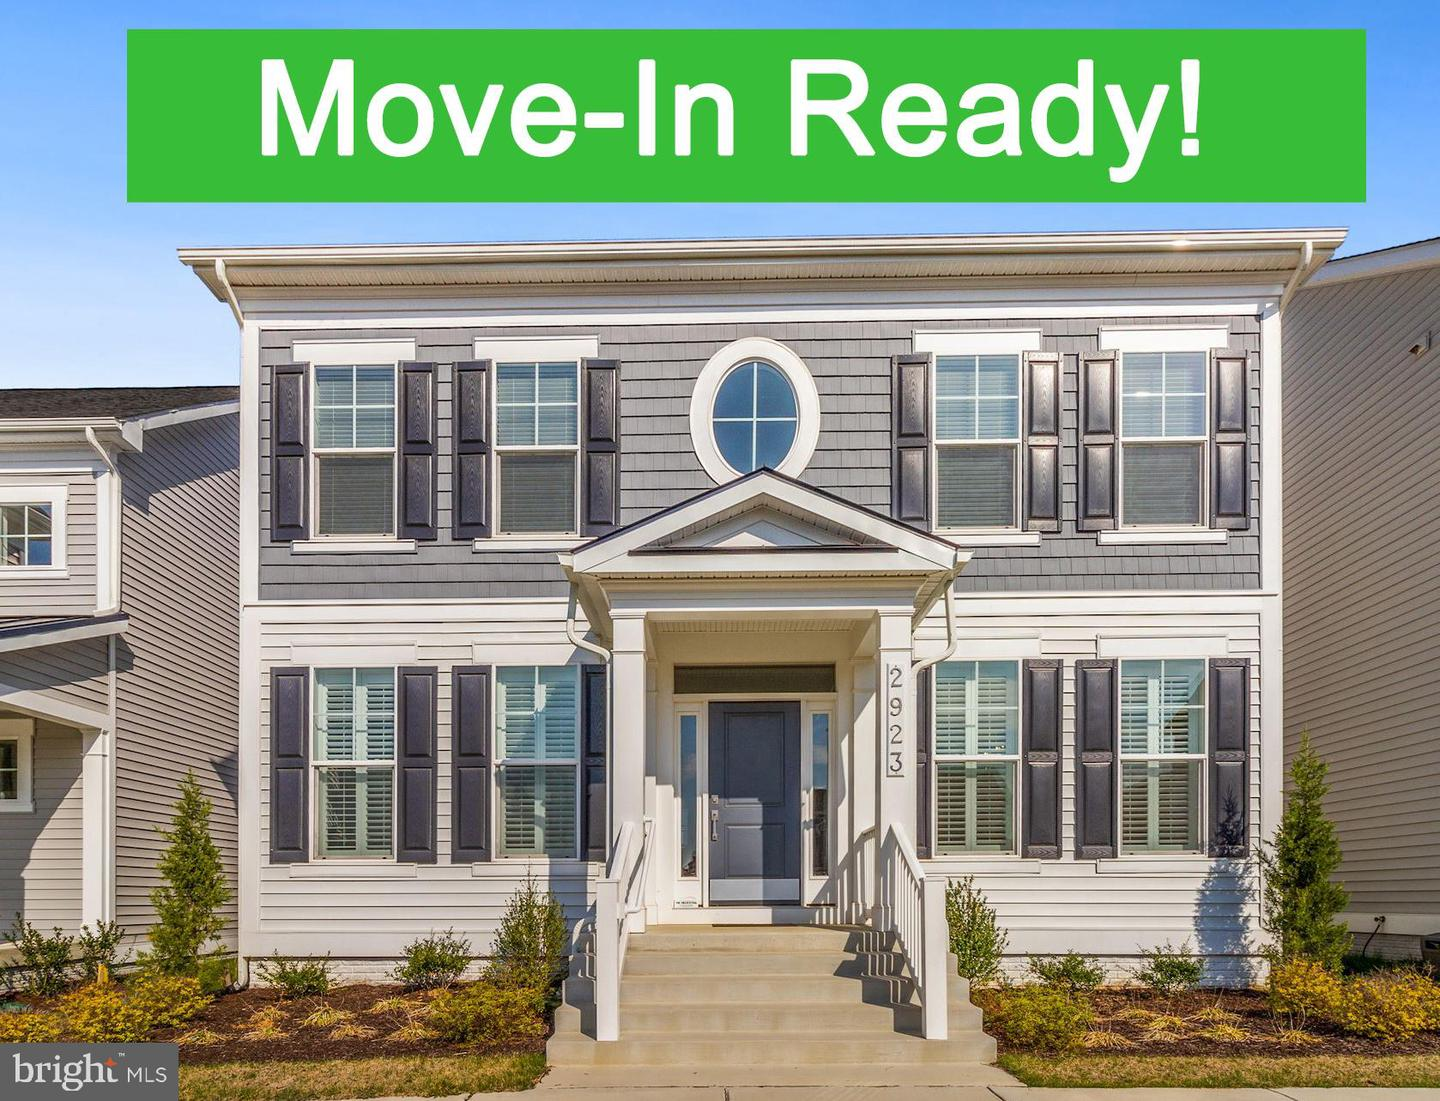 2923 WOOLGRASS DR, ODENTON, Maryland 21113, 4 Bedrooms Bedrooms, ,4 BathroomsBathrooms,Single Family,For Sale,2923 WOOLGRASS DR,MDAA464378